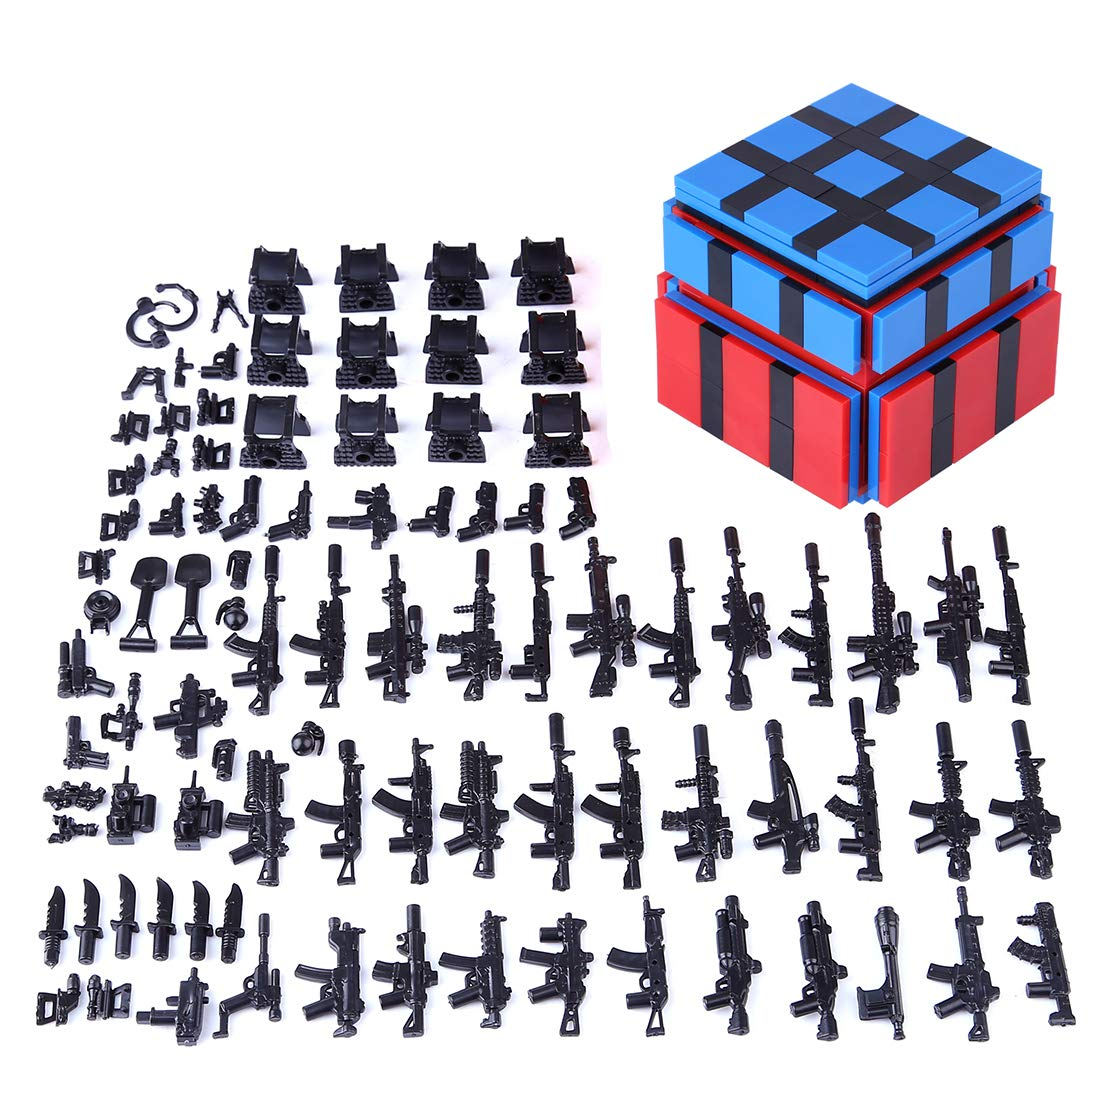 Lingxuinfo Military Army Weapons and Accessories for Brick Figures, Military Weapons Box Building Blocks Toy Compatible with Major Brands